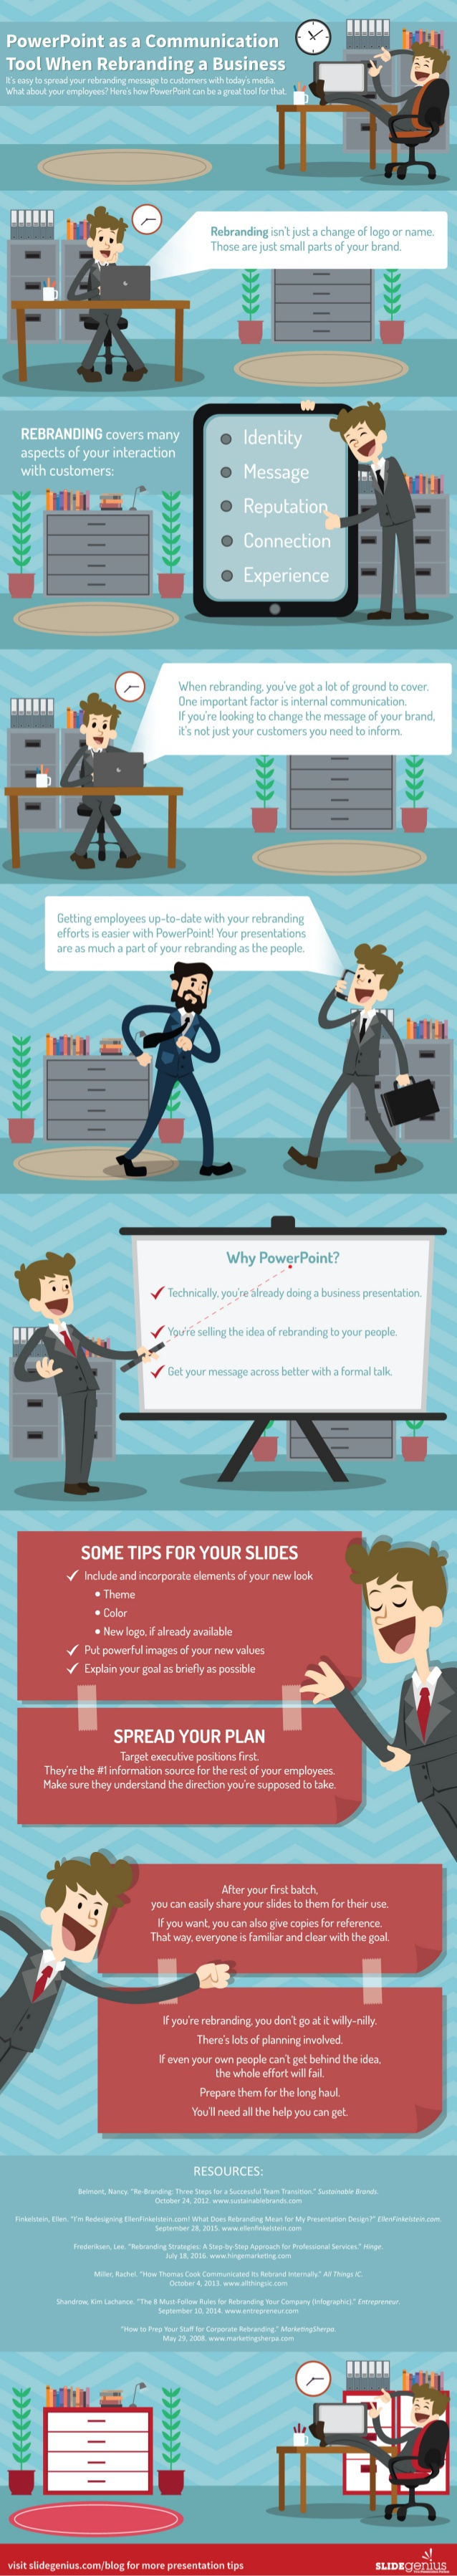 PowerPoint as a Communication Tool When Rebranding a Business